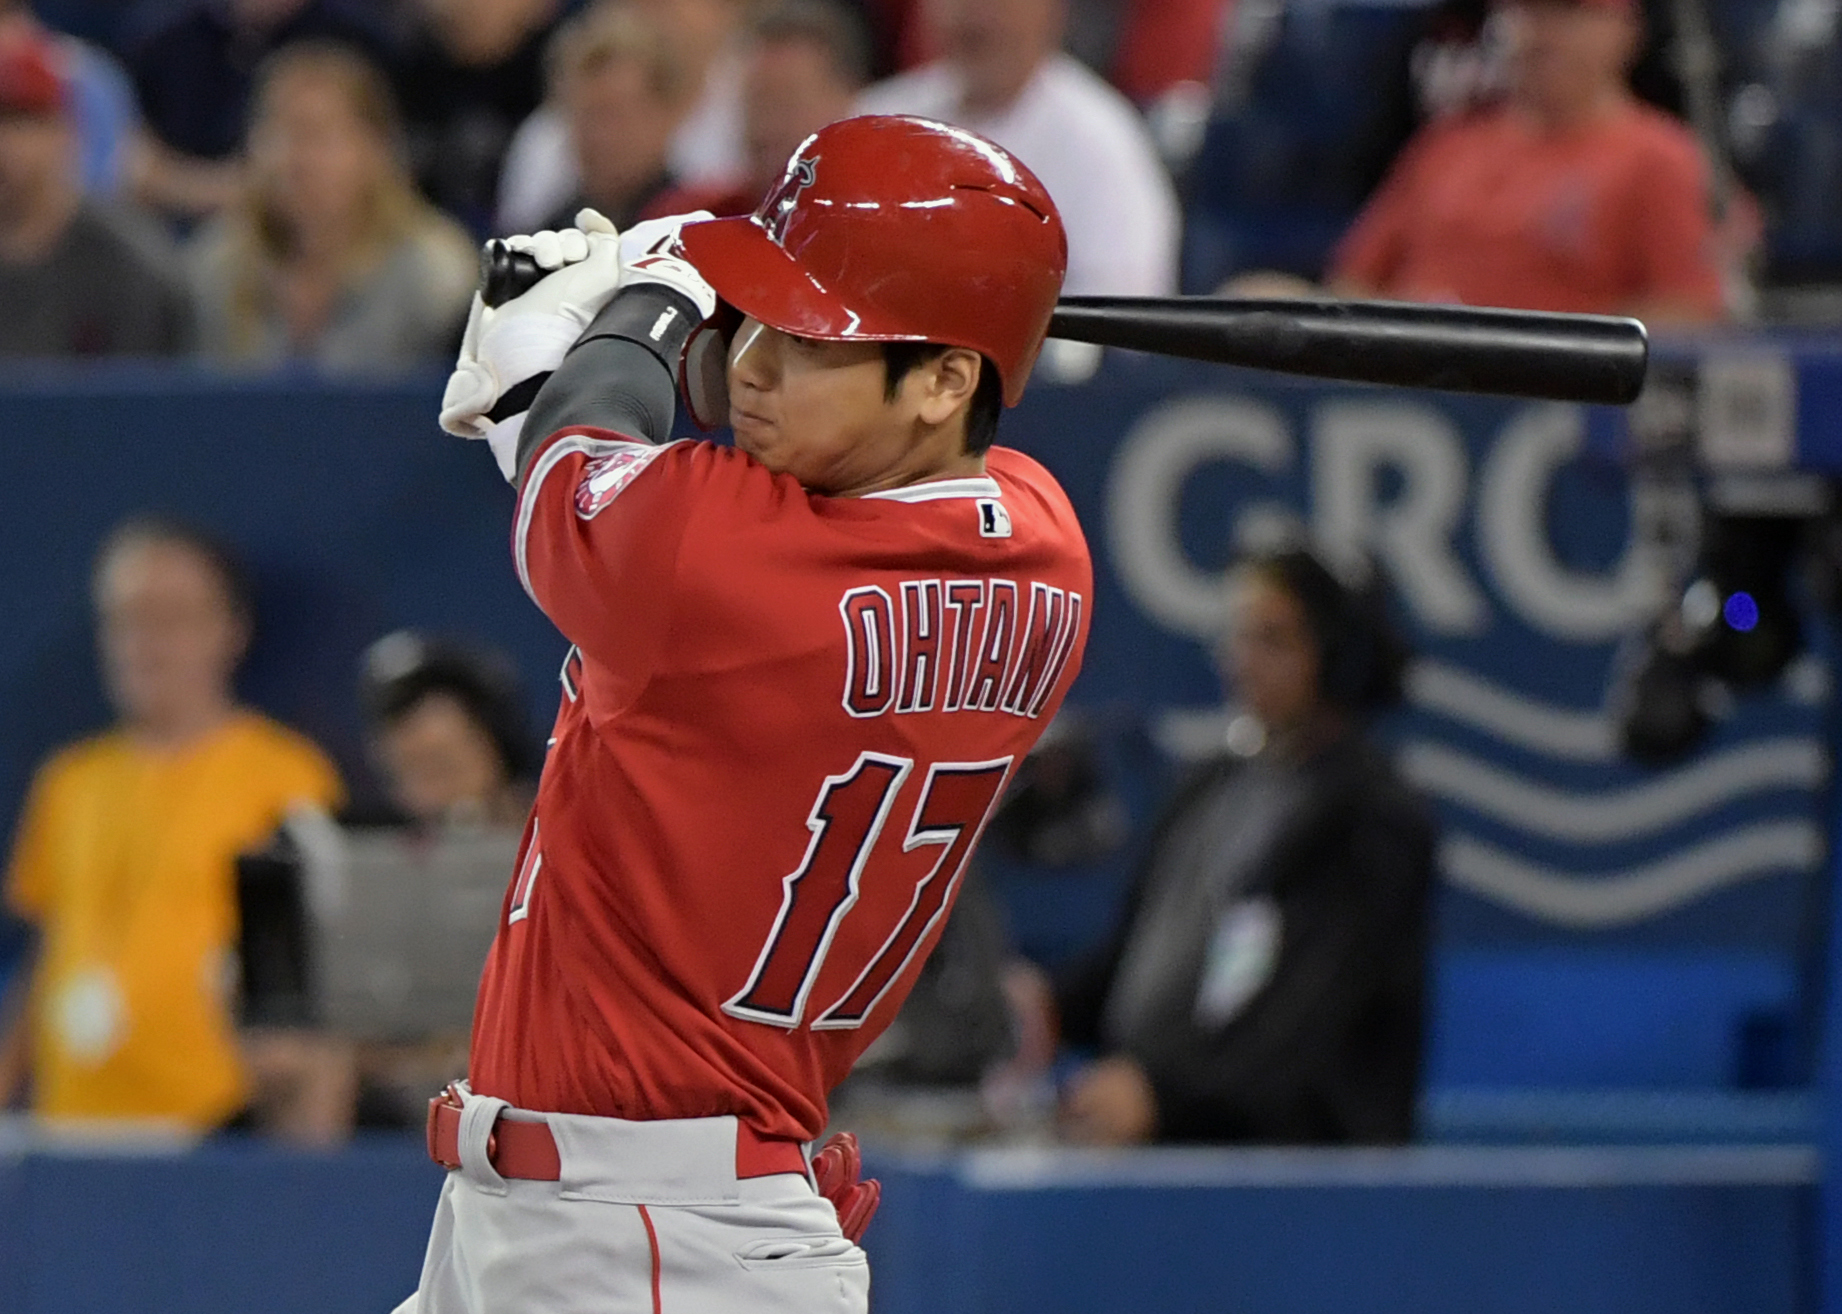 Shohei Ohtani making impact for Angels as DH while recovering from Tommy John surgery